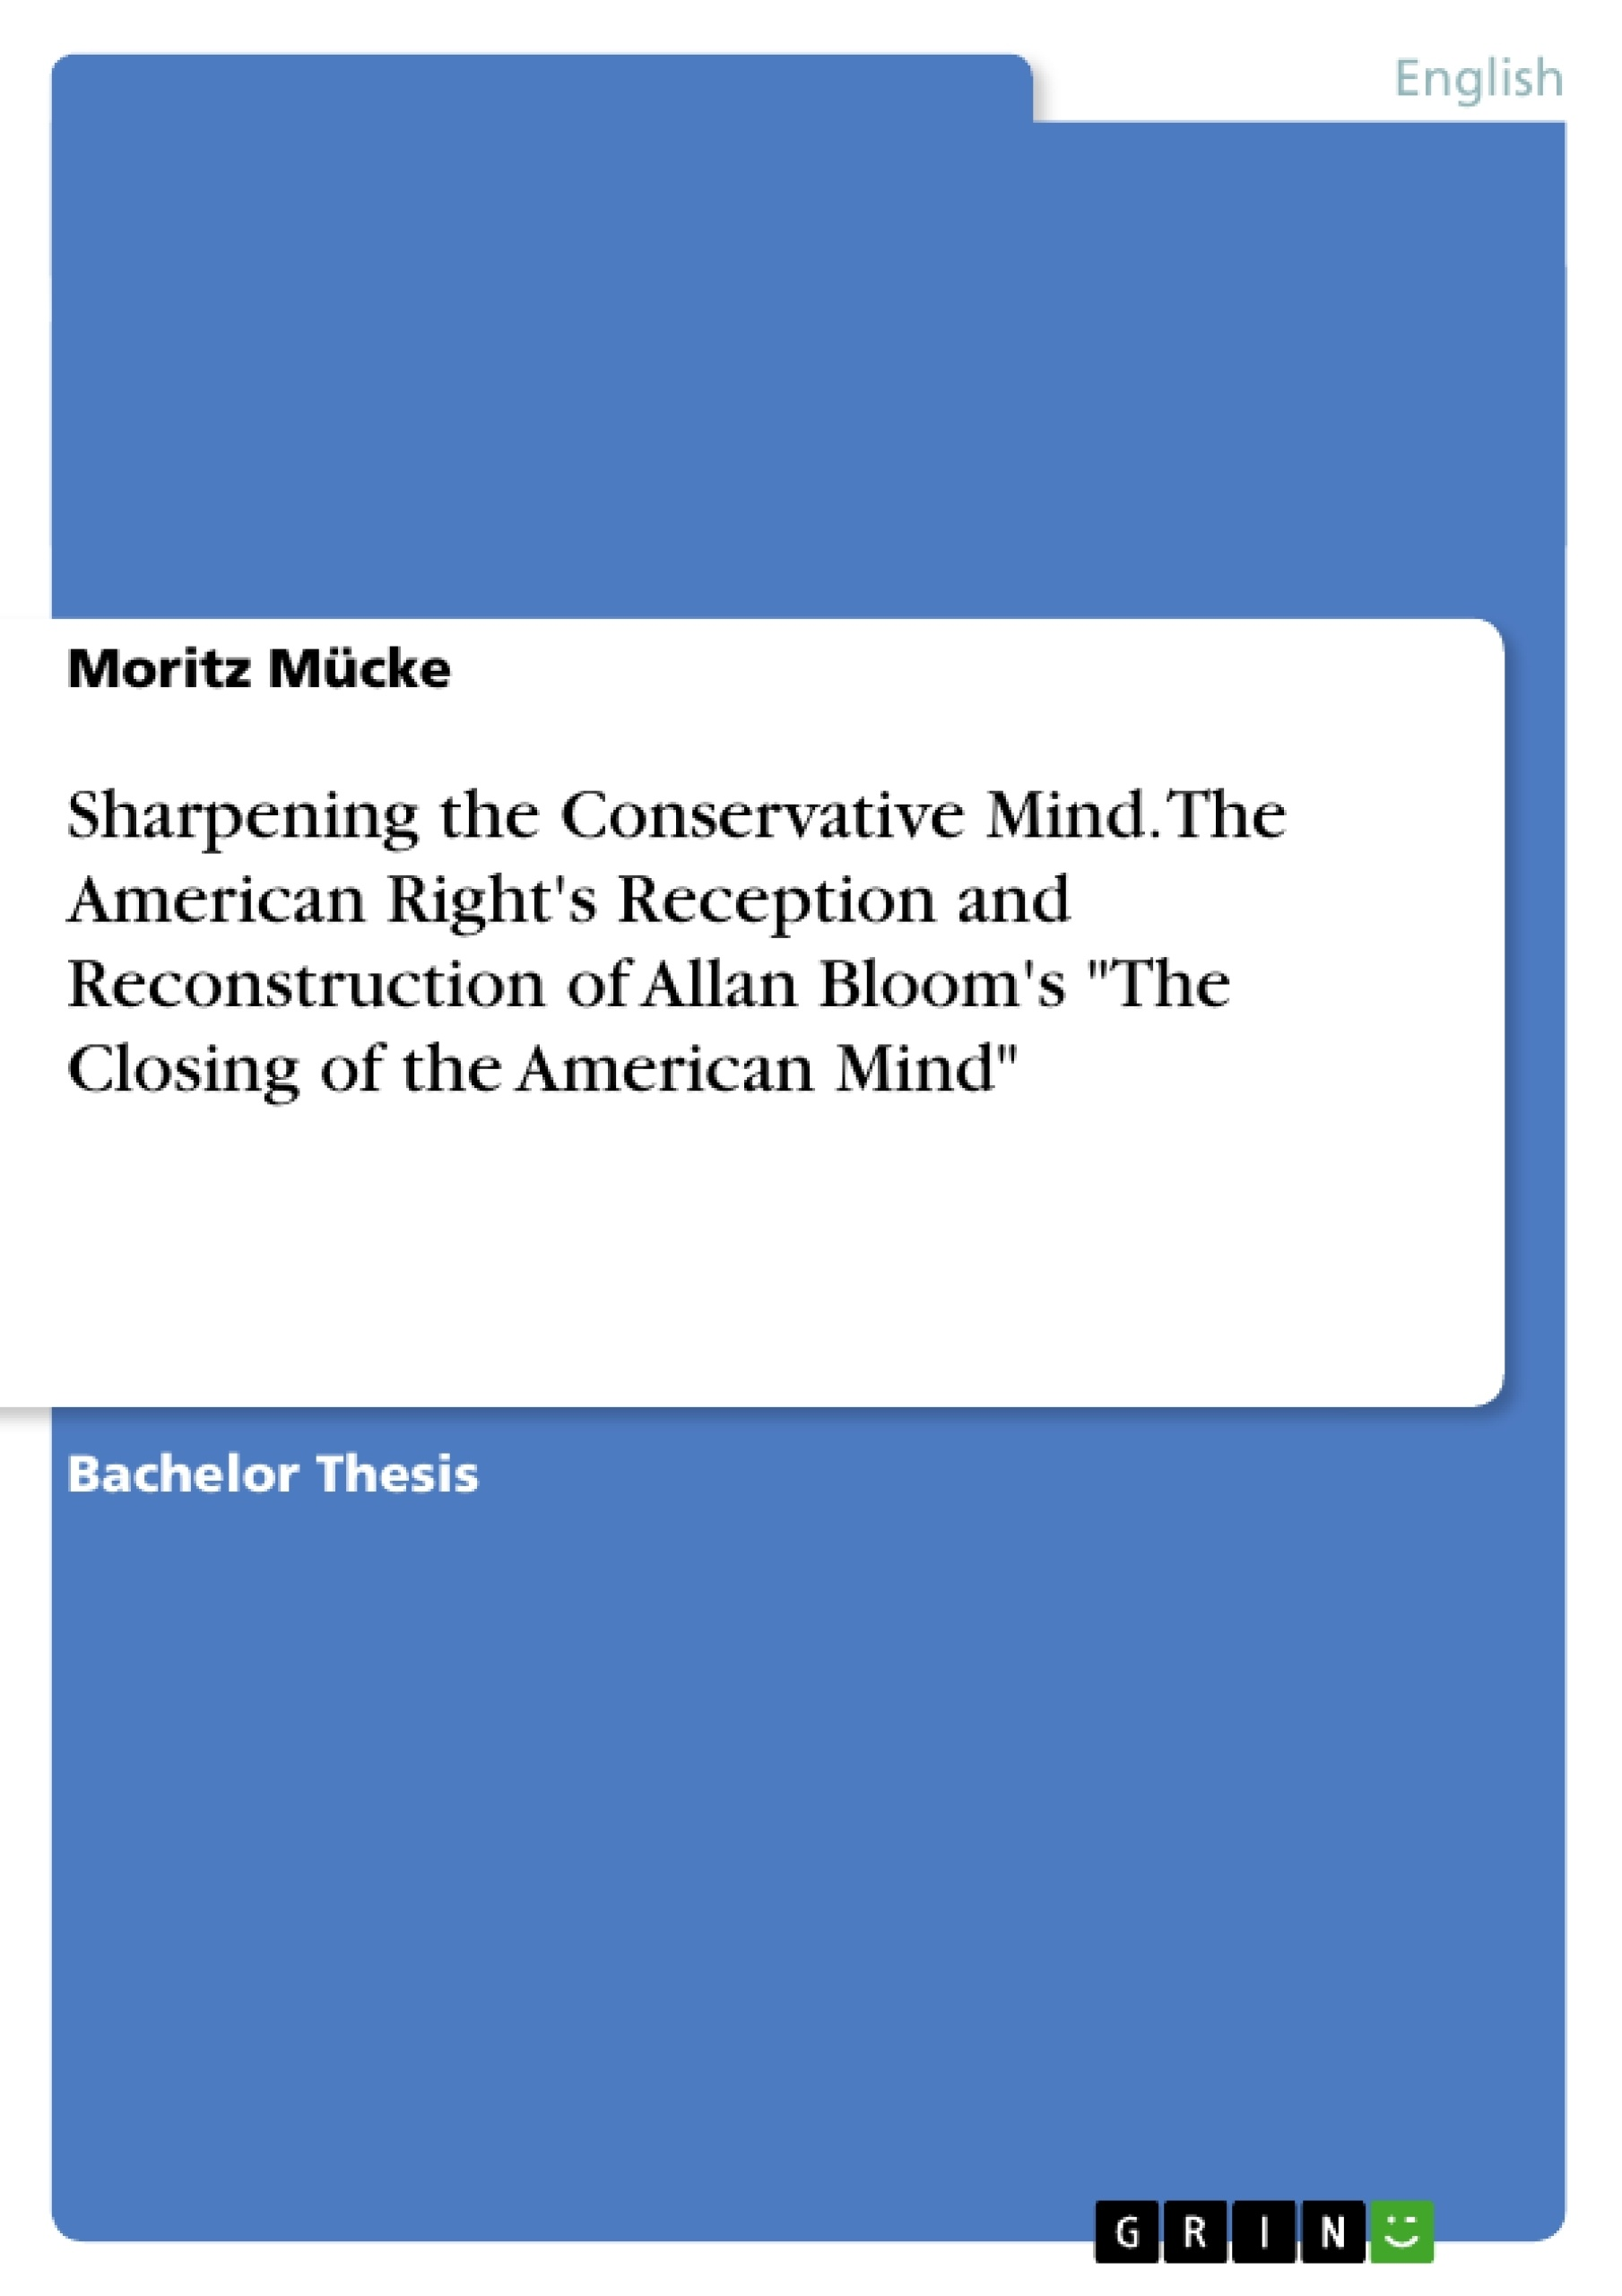 """Title: Sharpening the Conservative Mind. The American Right's Reception and Reconstruction of Allan Bloom's """"The Closing of the American Mind"""""""